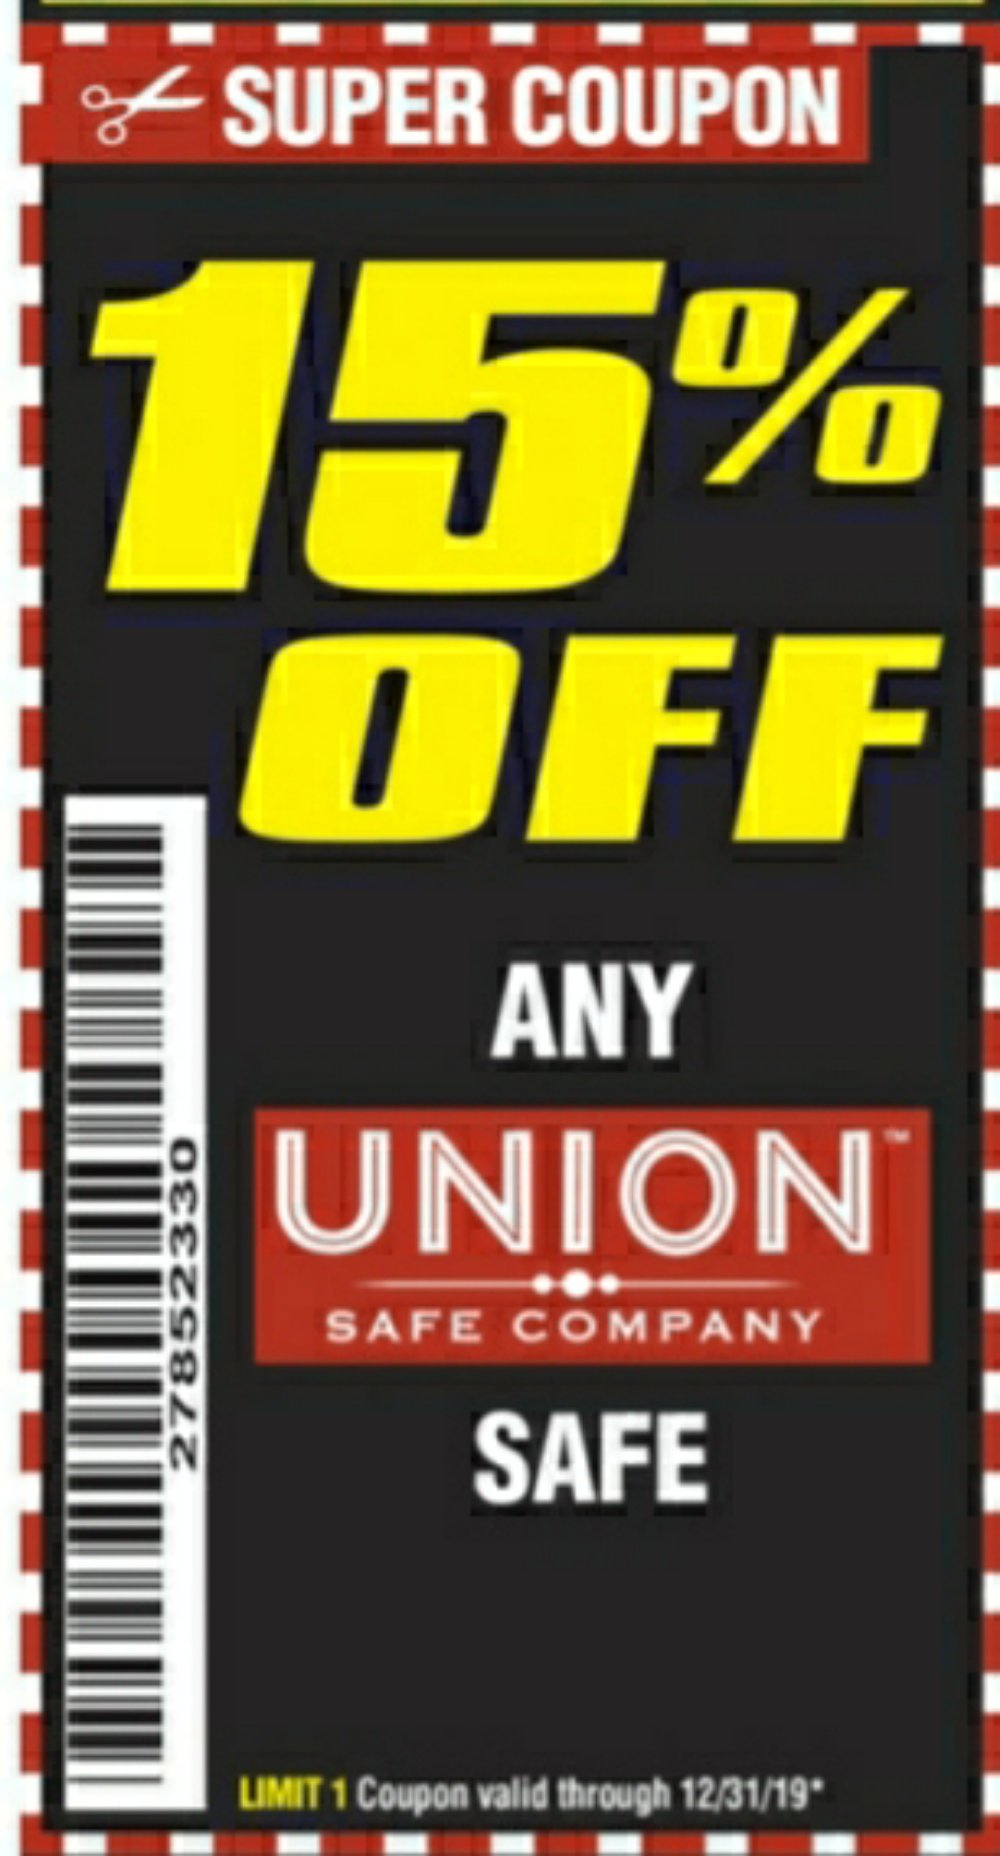 Harbor Freight Coupon, HF Coupons - 15% off union safes